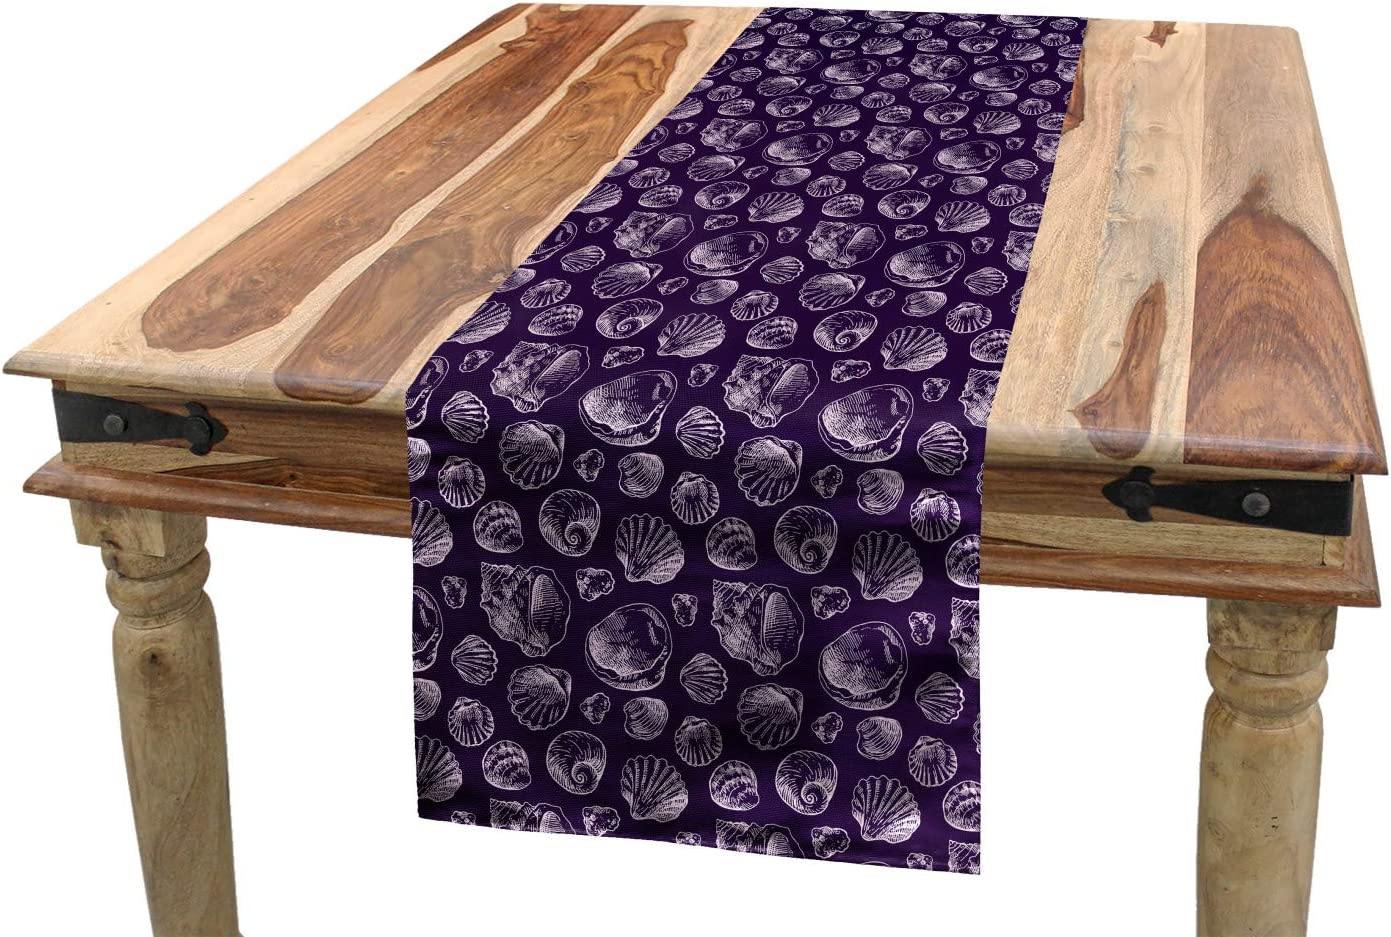 Amazon Com Lunarable Seashells Table Runner Hand Drawn Sketches Of A Variety Of Mollusk Shells Scallop And Oysters Dining Room Kitchen Rectangular Runner 16 X 120 Dark Purple And White Home Kitchen